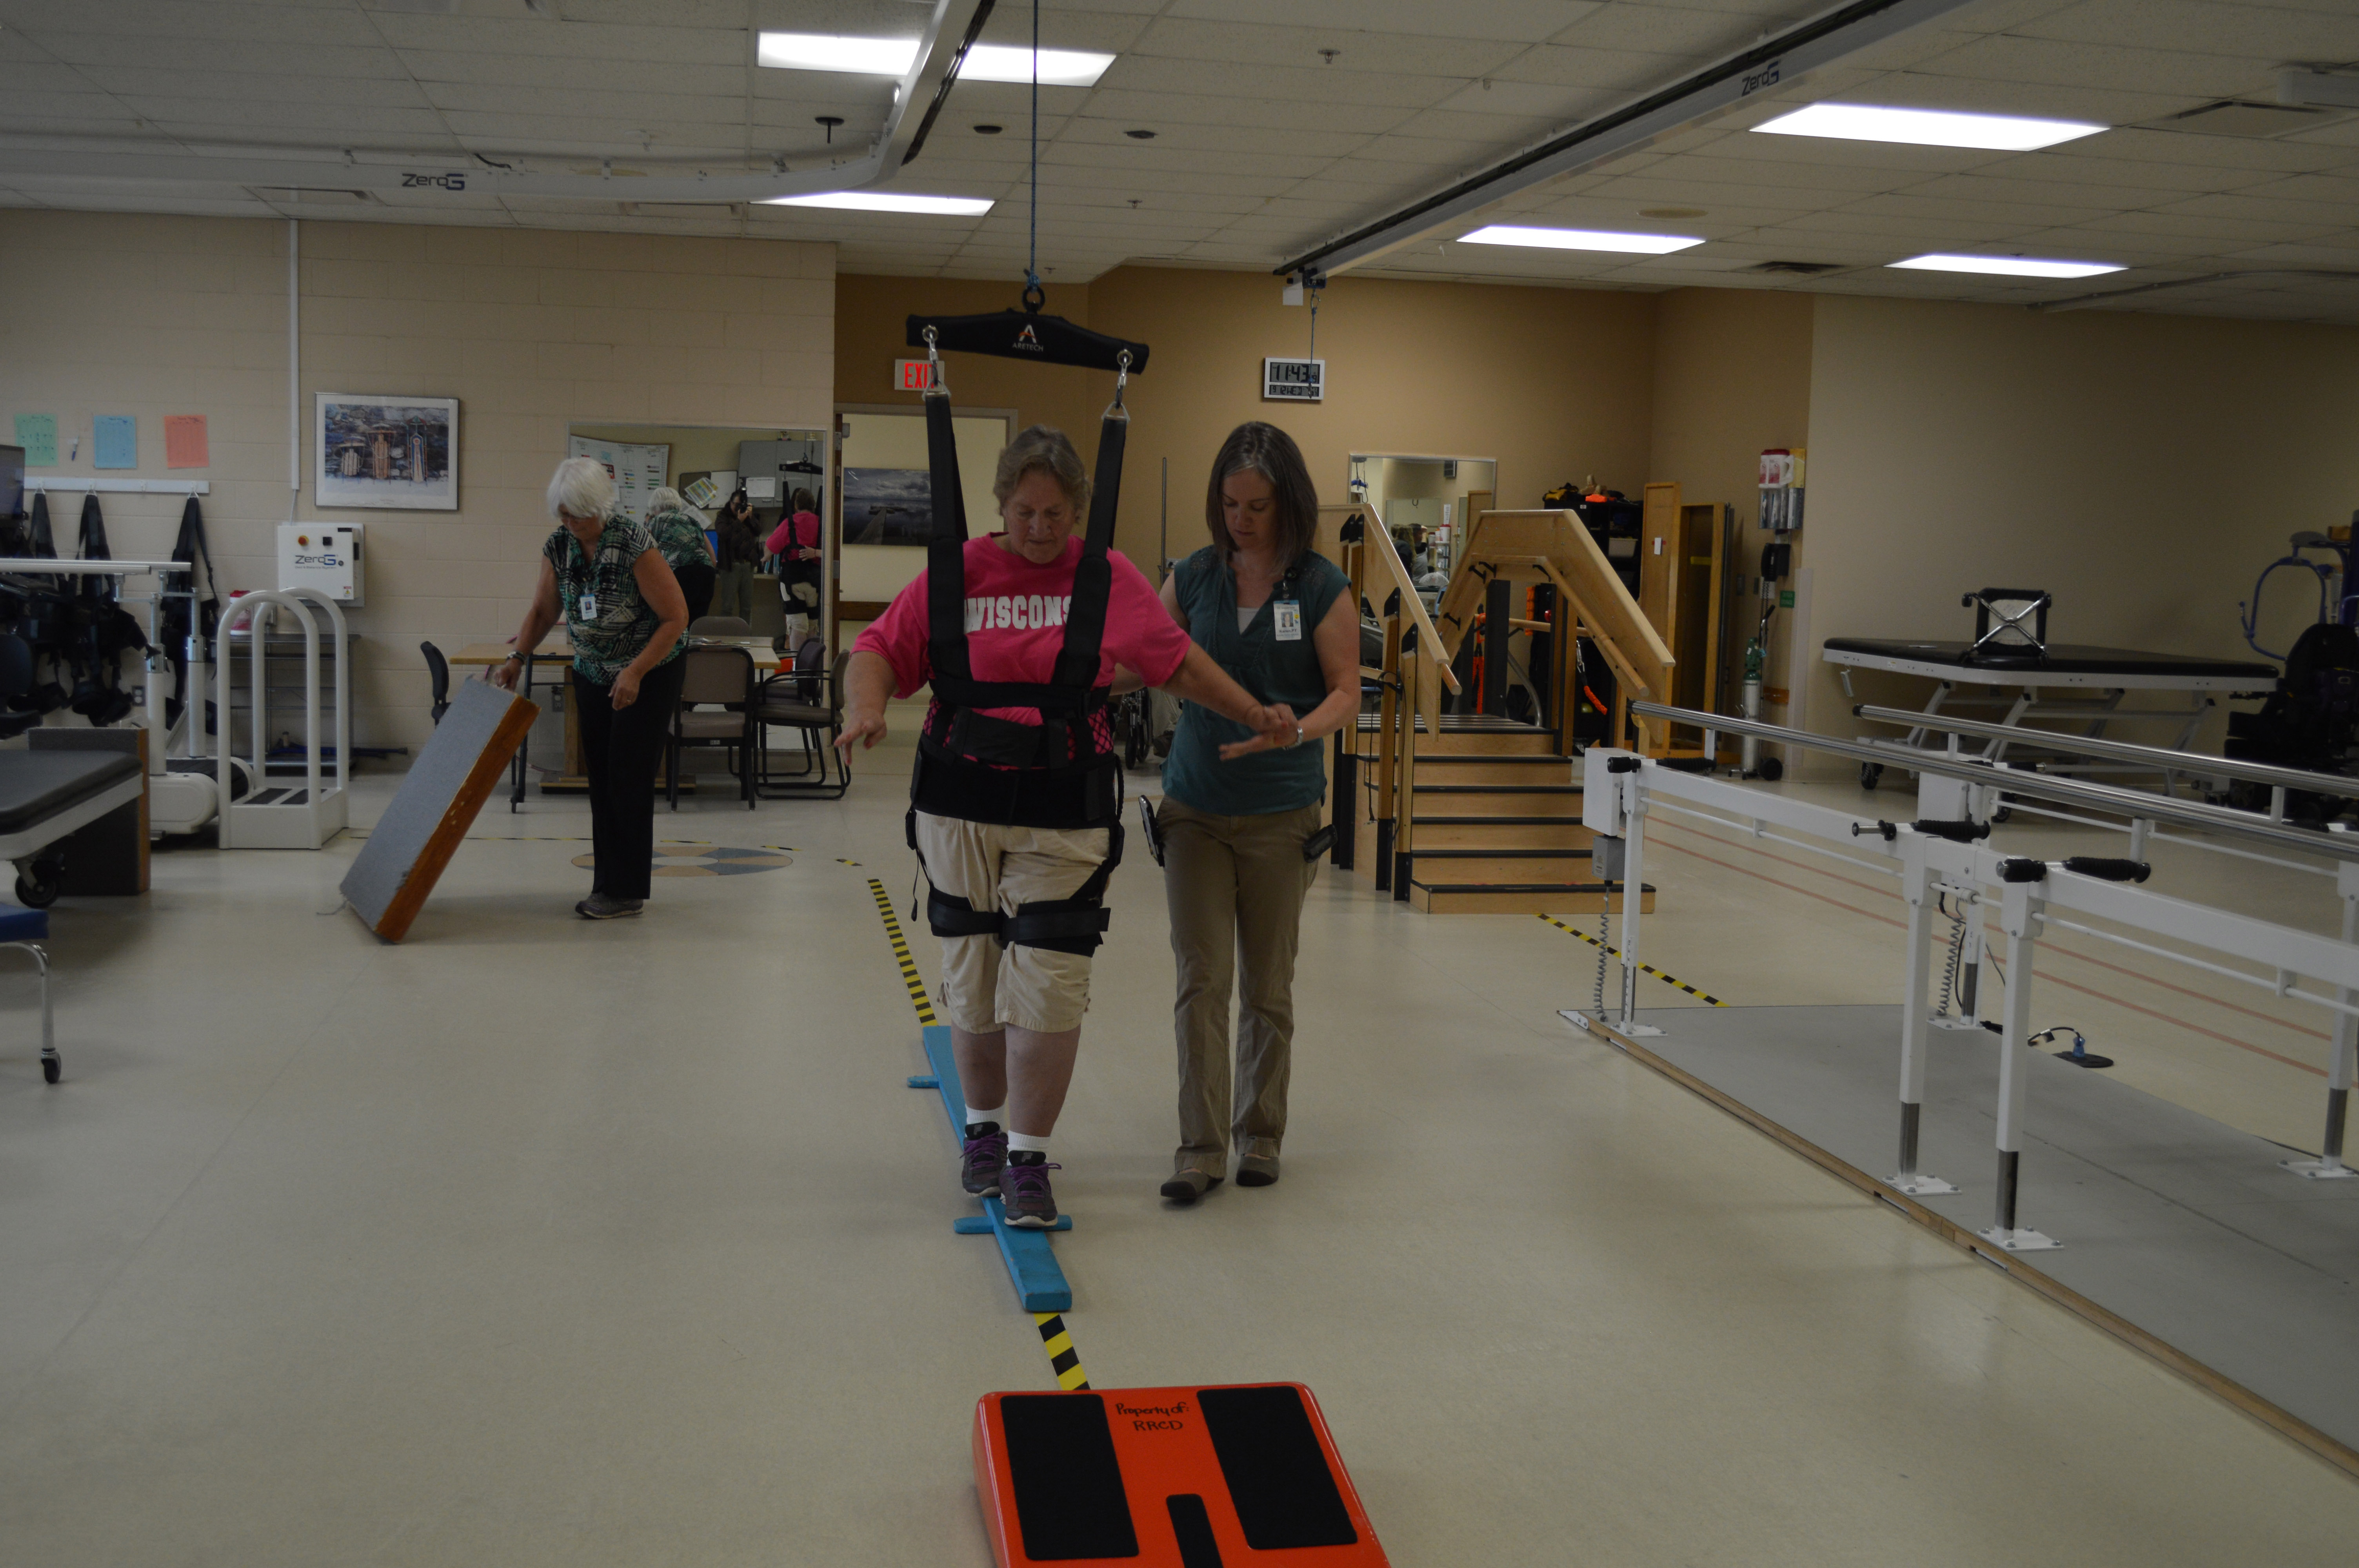 Physical therapy rehab assisted walking on equipment